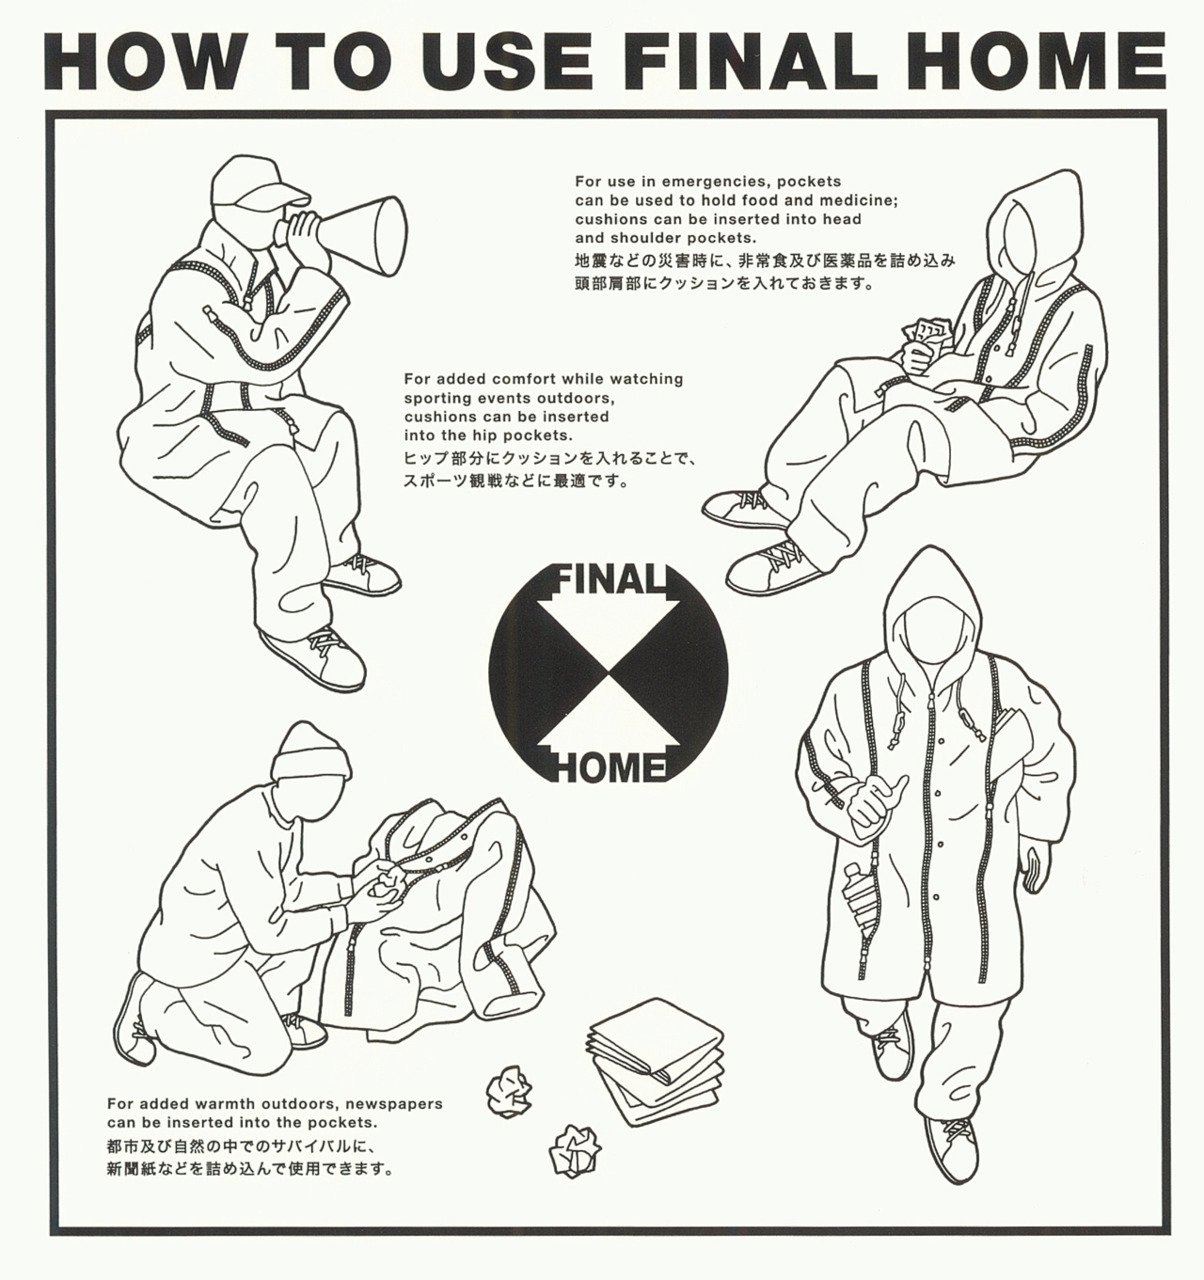 final home/kosuke tsumurahow to use final home, 1994 future beauty: 30 years of japanese fashion